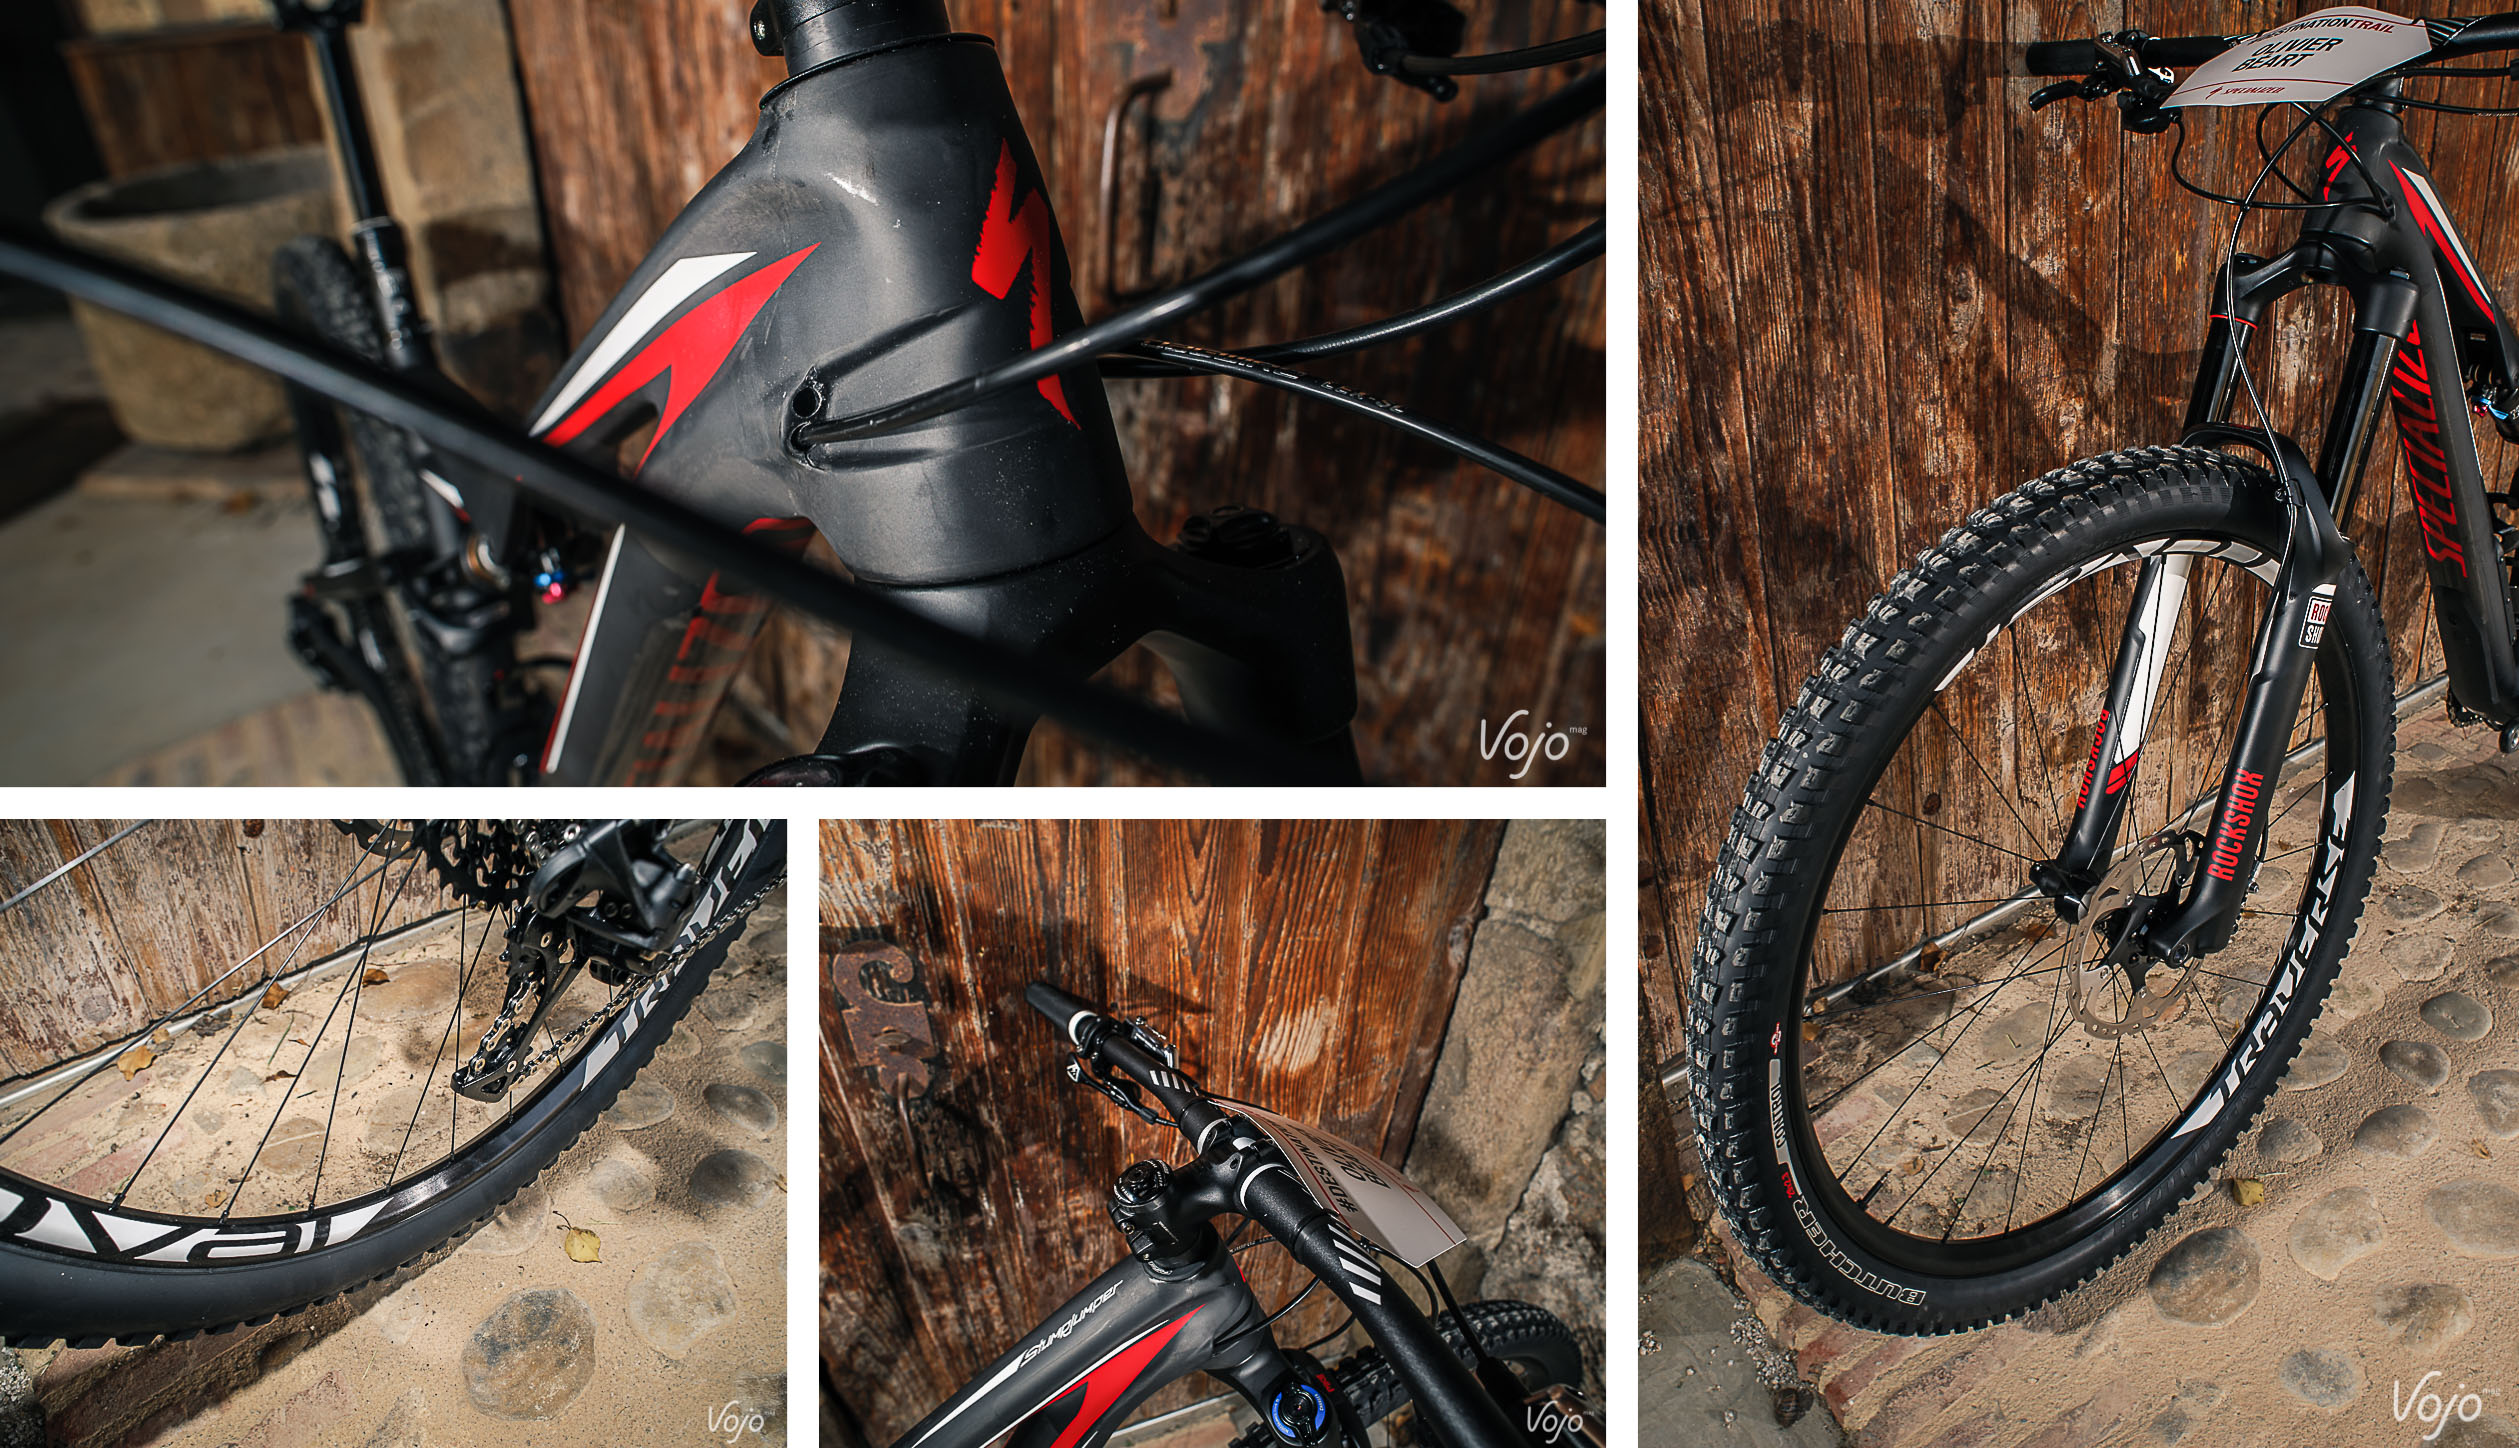 Compo_2_Specialized_Stumpjumper_2016_Swat_Copyright_OBeart_VojoMag-1